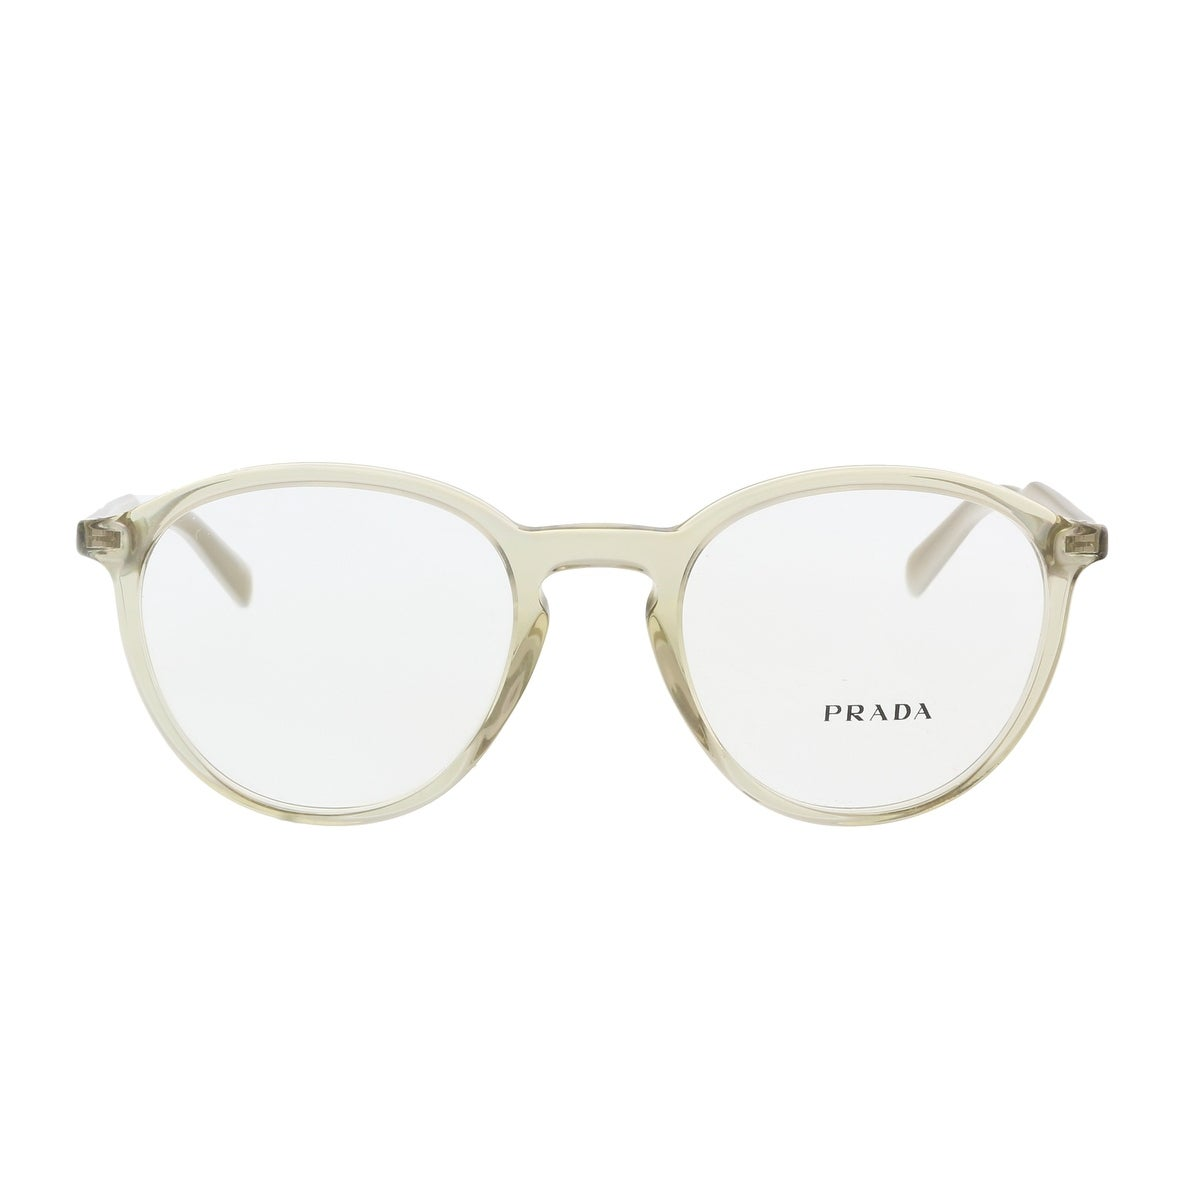 84ccc54eeb82 Shop Prada PR 13TV VAW1O1 Taupe Round Optical Frames - 49-20-140 - Free  Shipping Today - Overstock - 19547163